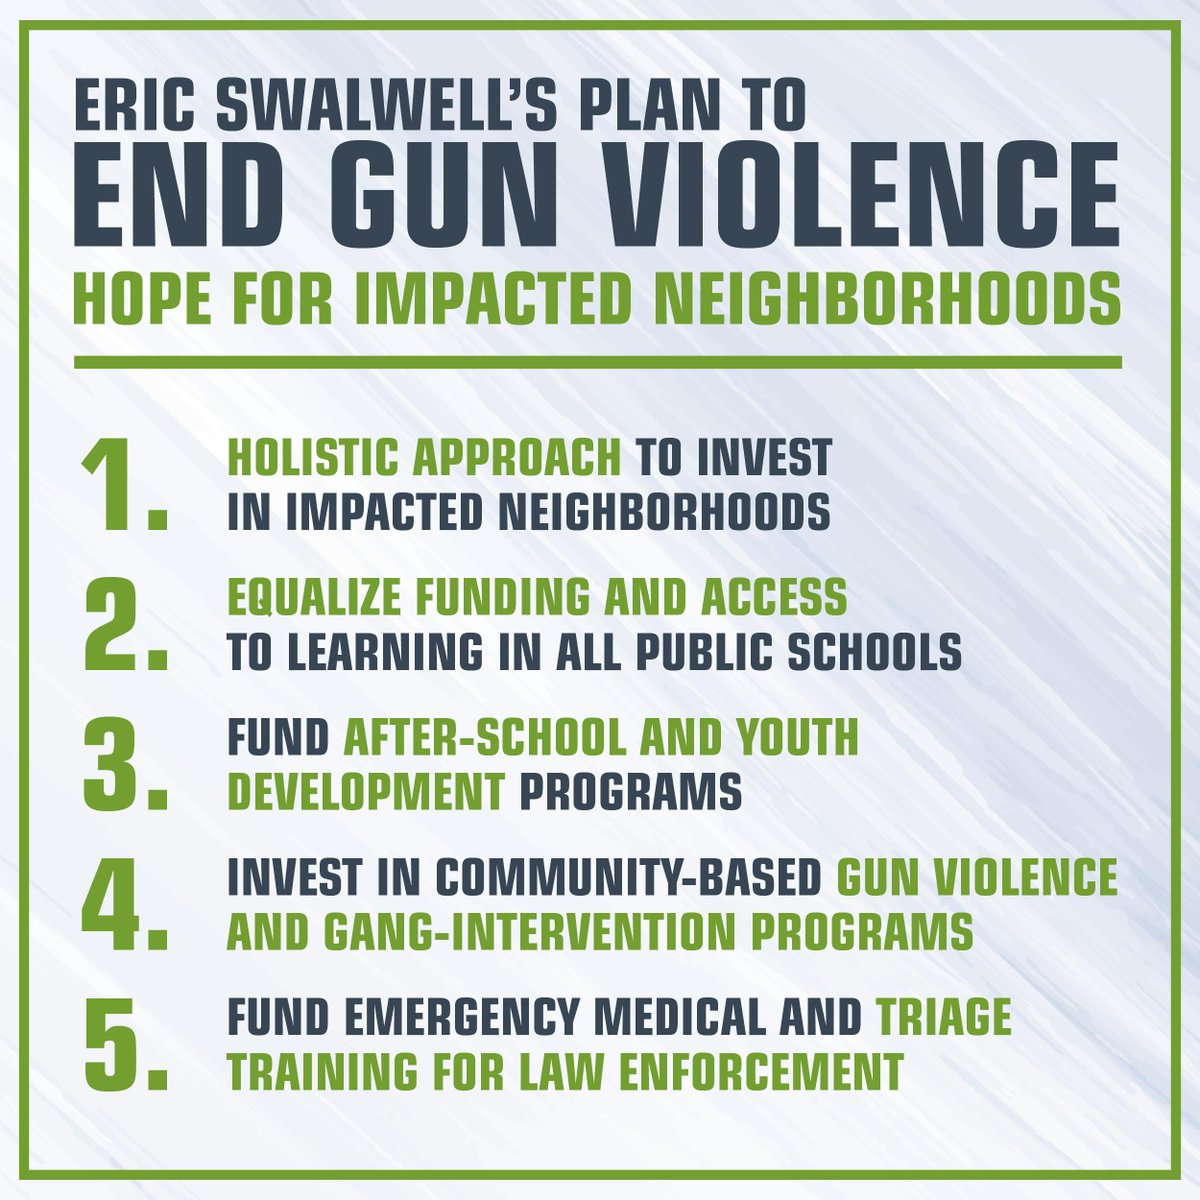 We will restore hope where hope has been lost.  For more on our comprehensive plan to end gun violence, go to http://ericswalwell.com/endgunviolence